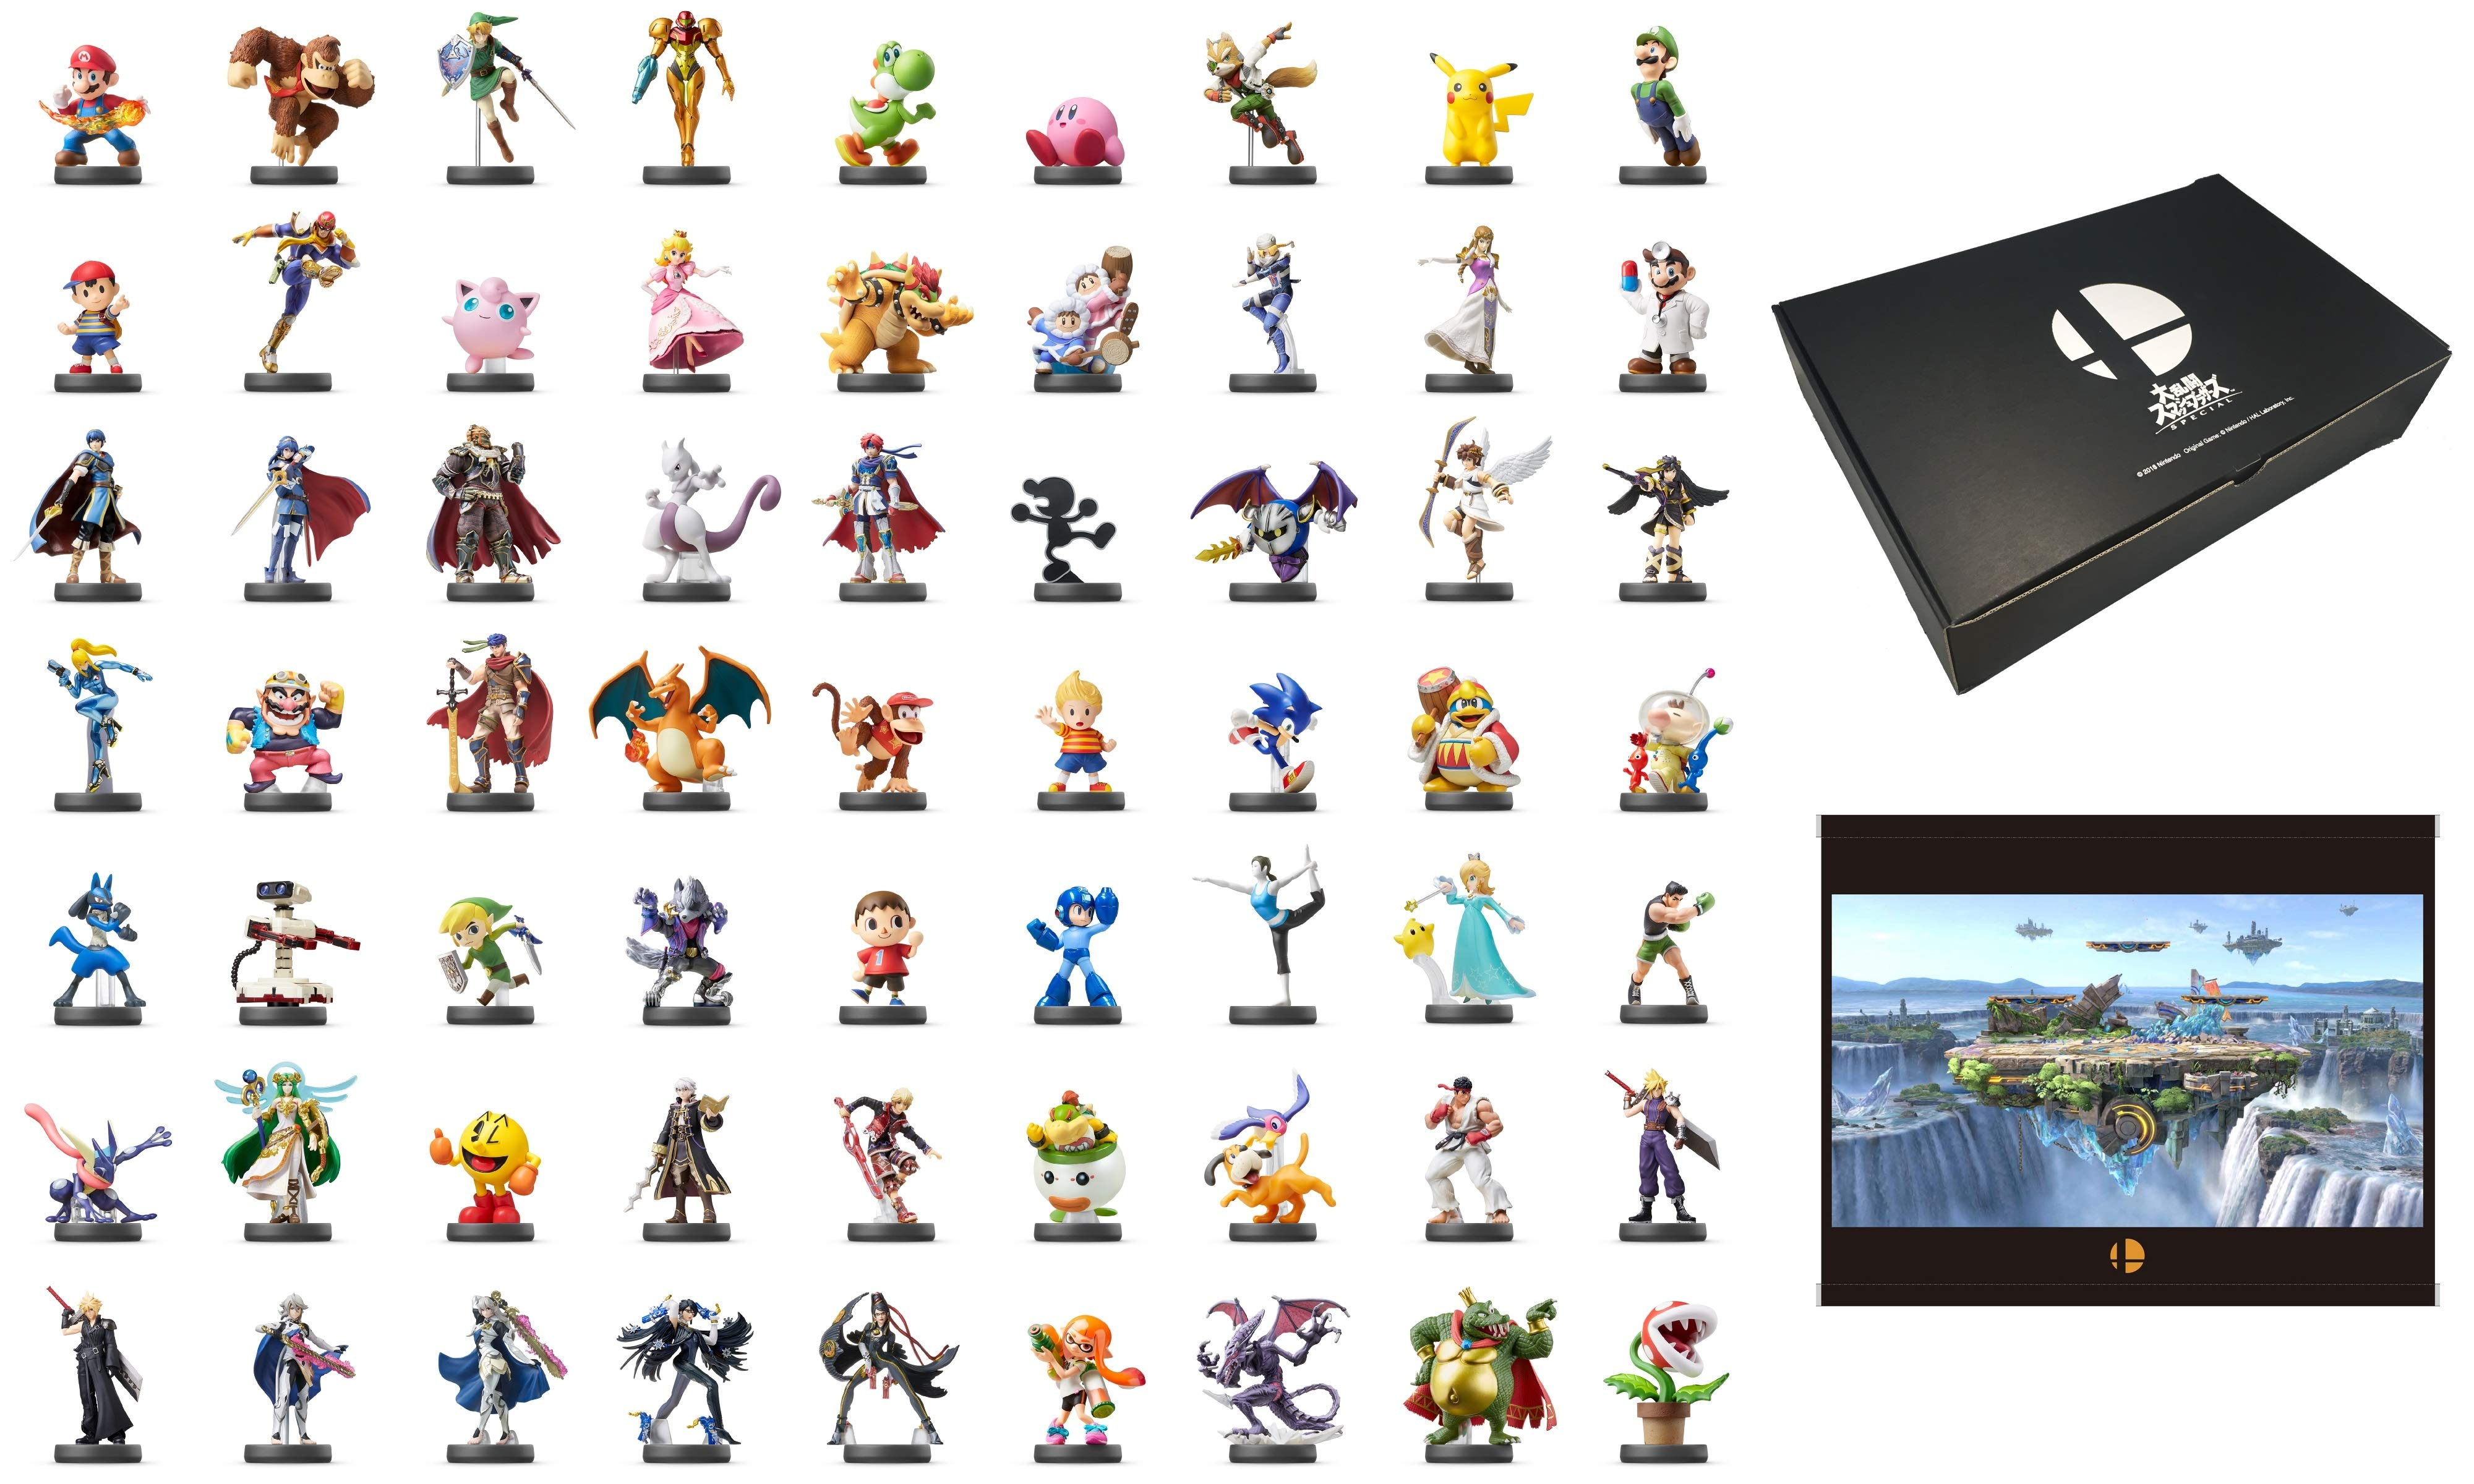 Amazon Japan Is Selling A Box With 63 Amiibo In It